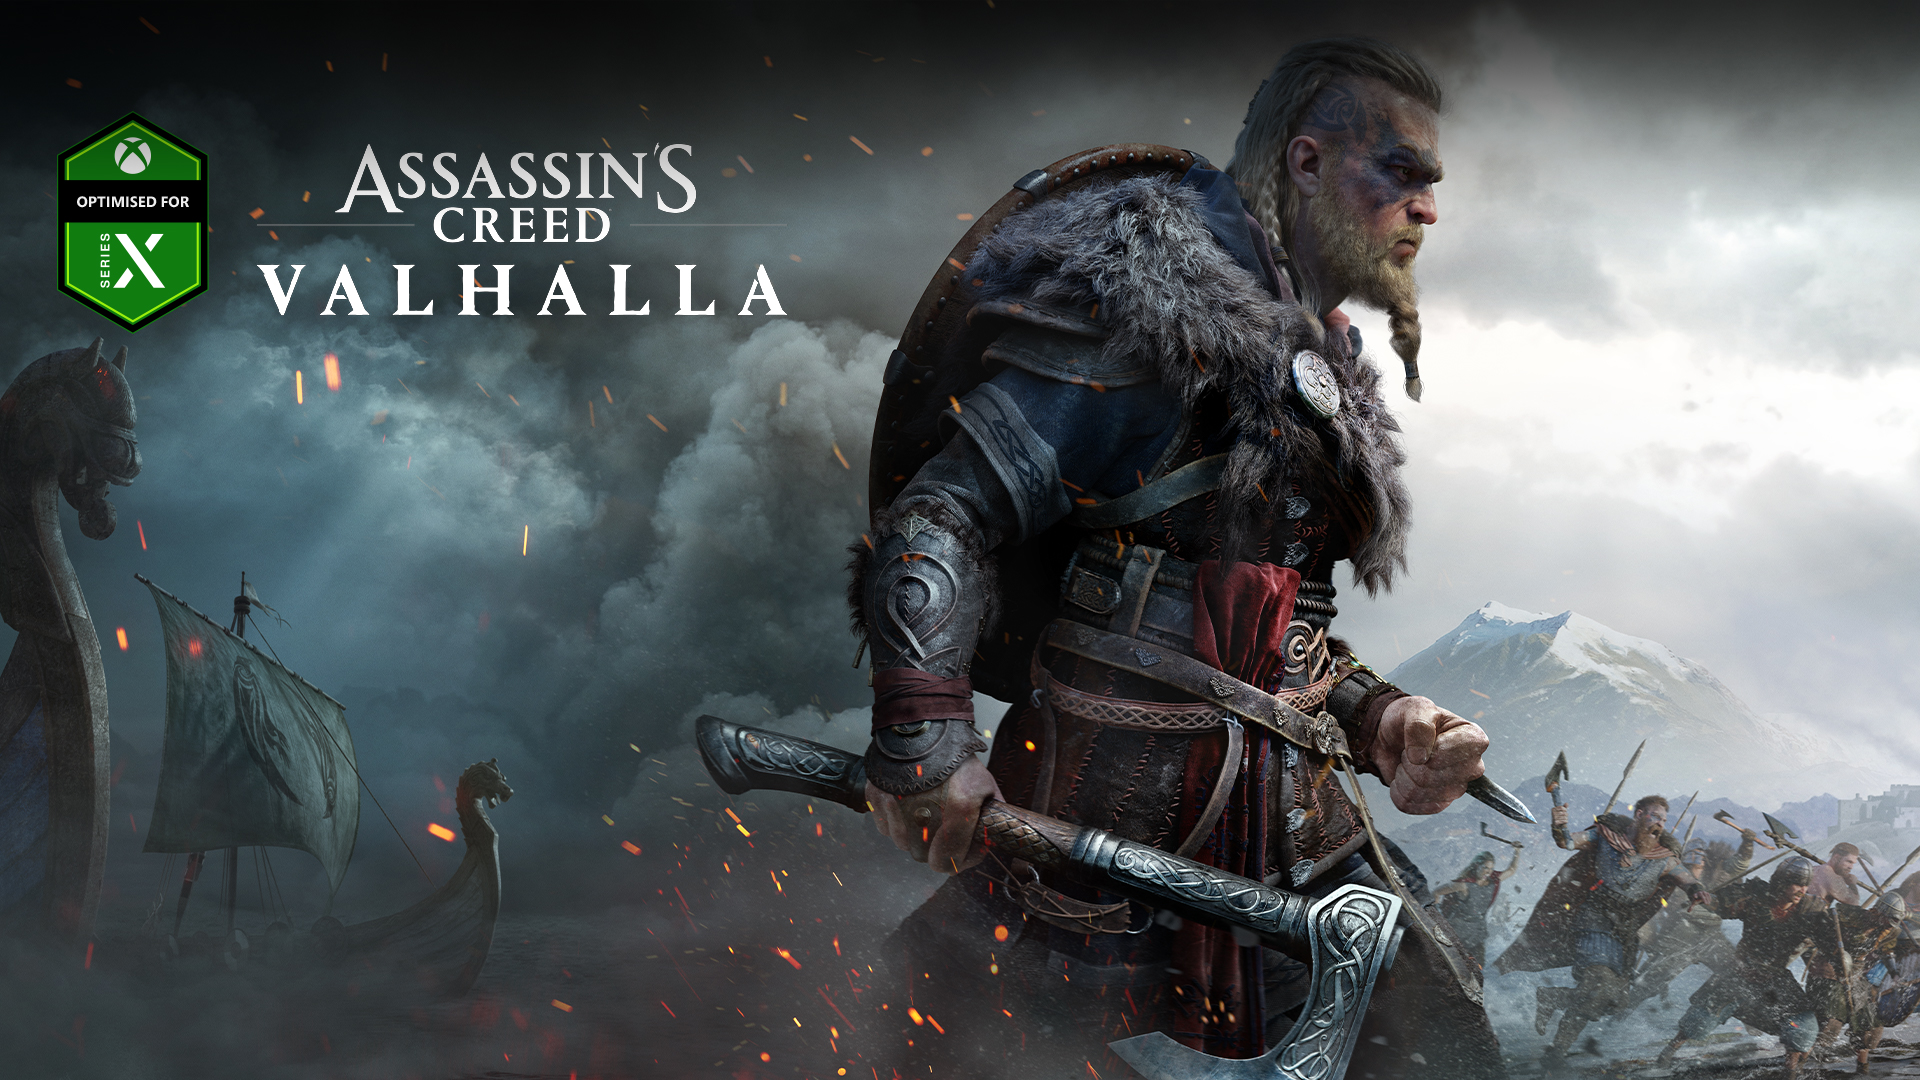 Optimised for Xbox Series X logo, Assassin's Creed Valhalla, character with an axe, ships in the fog and a battle